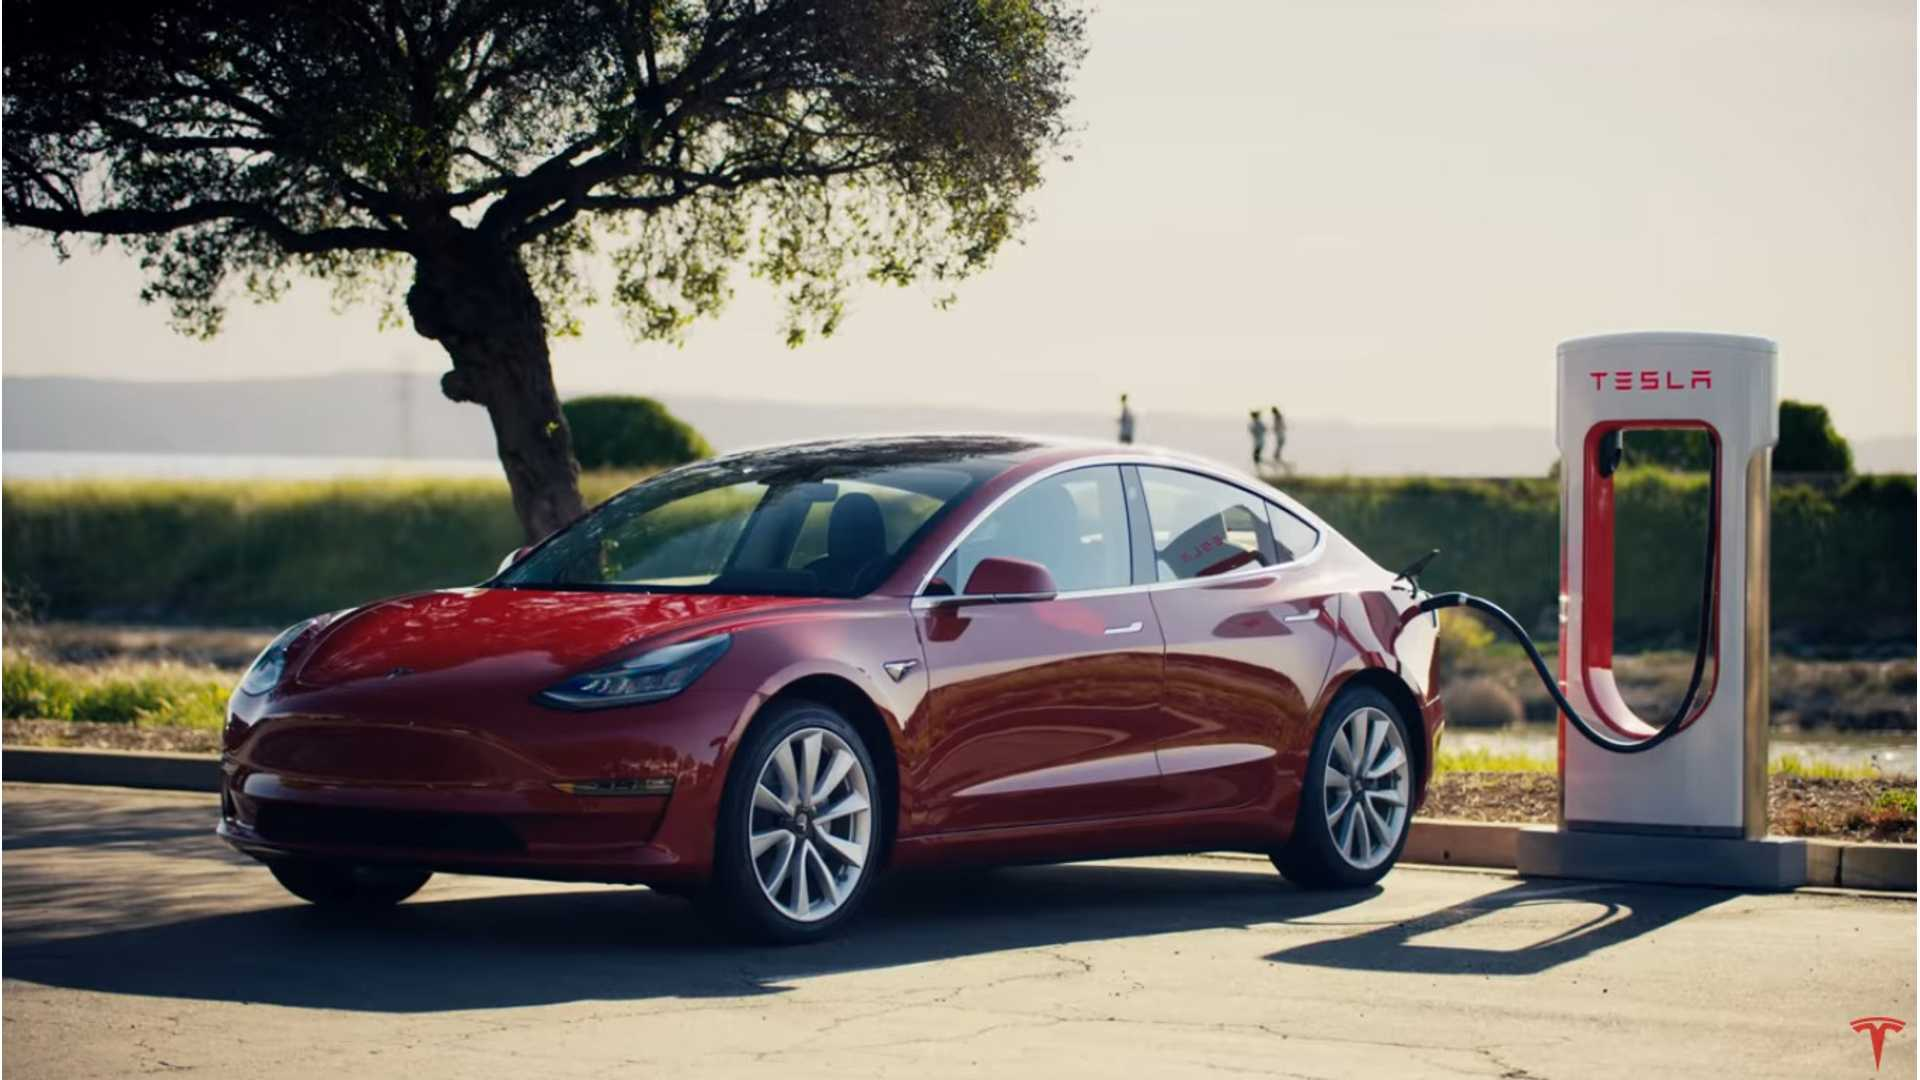 tesla-model-3-on-supercharger-v3-here-are-the-charging-specs.jpg